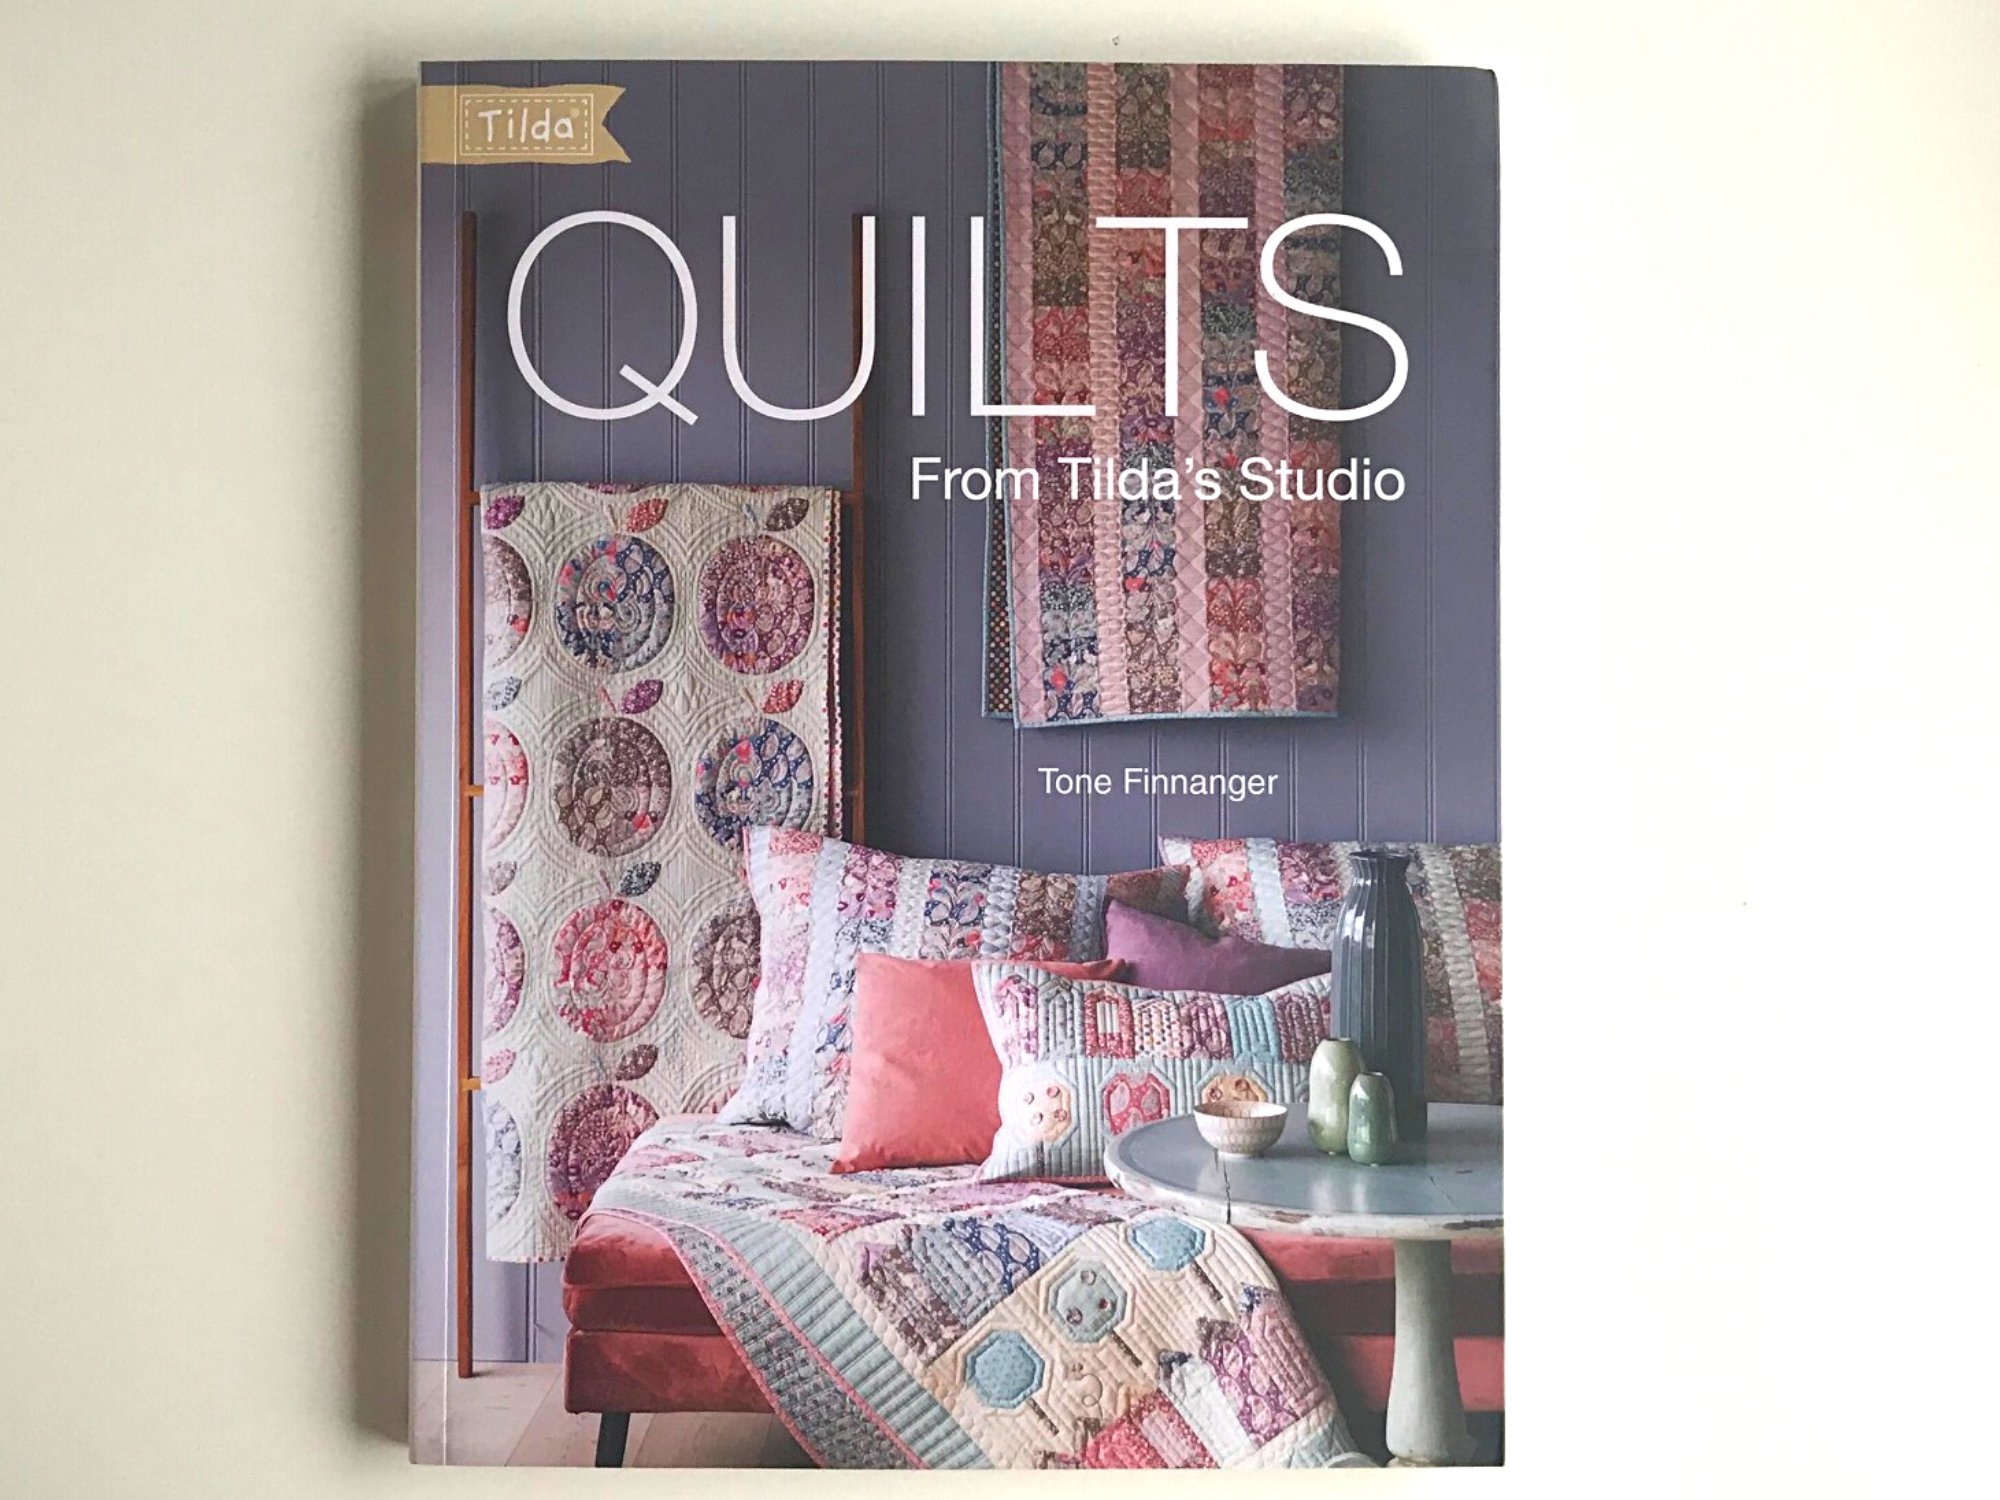 Quilts from Tilda's Studio Book by Tone Finnanger